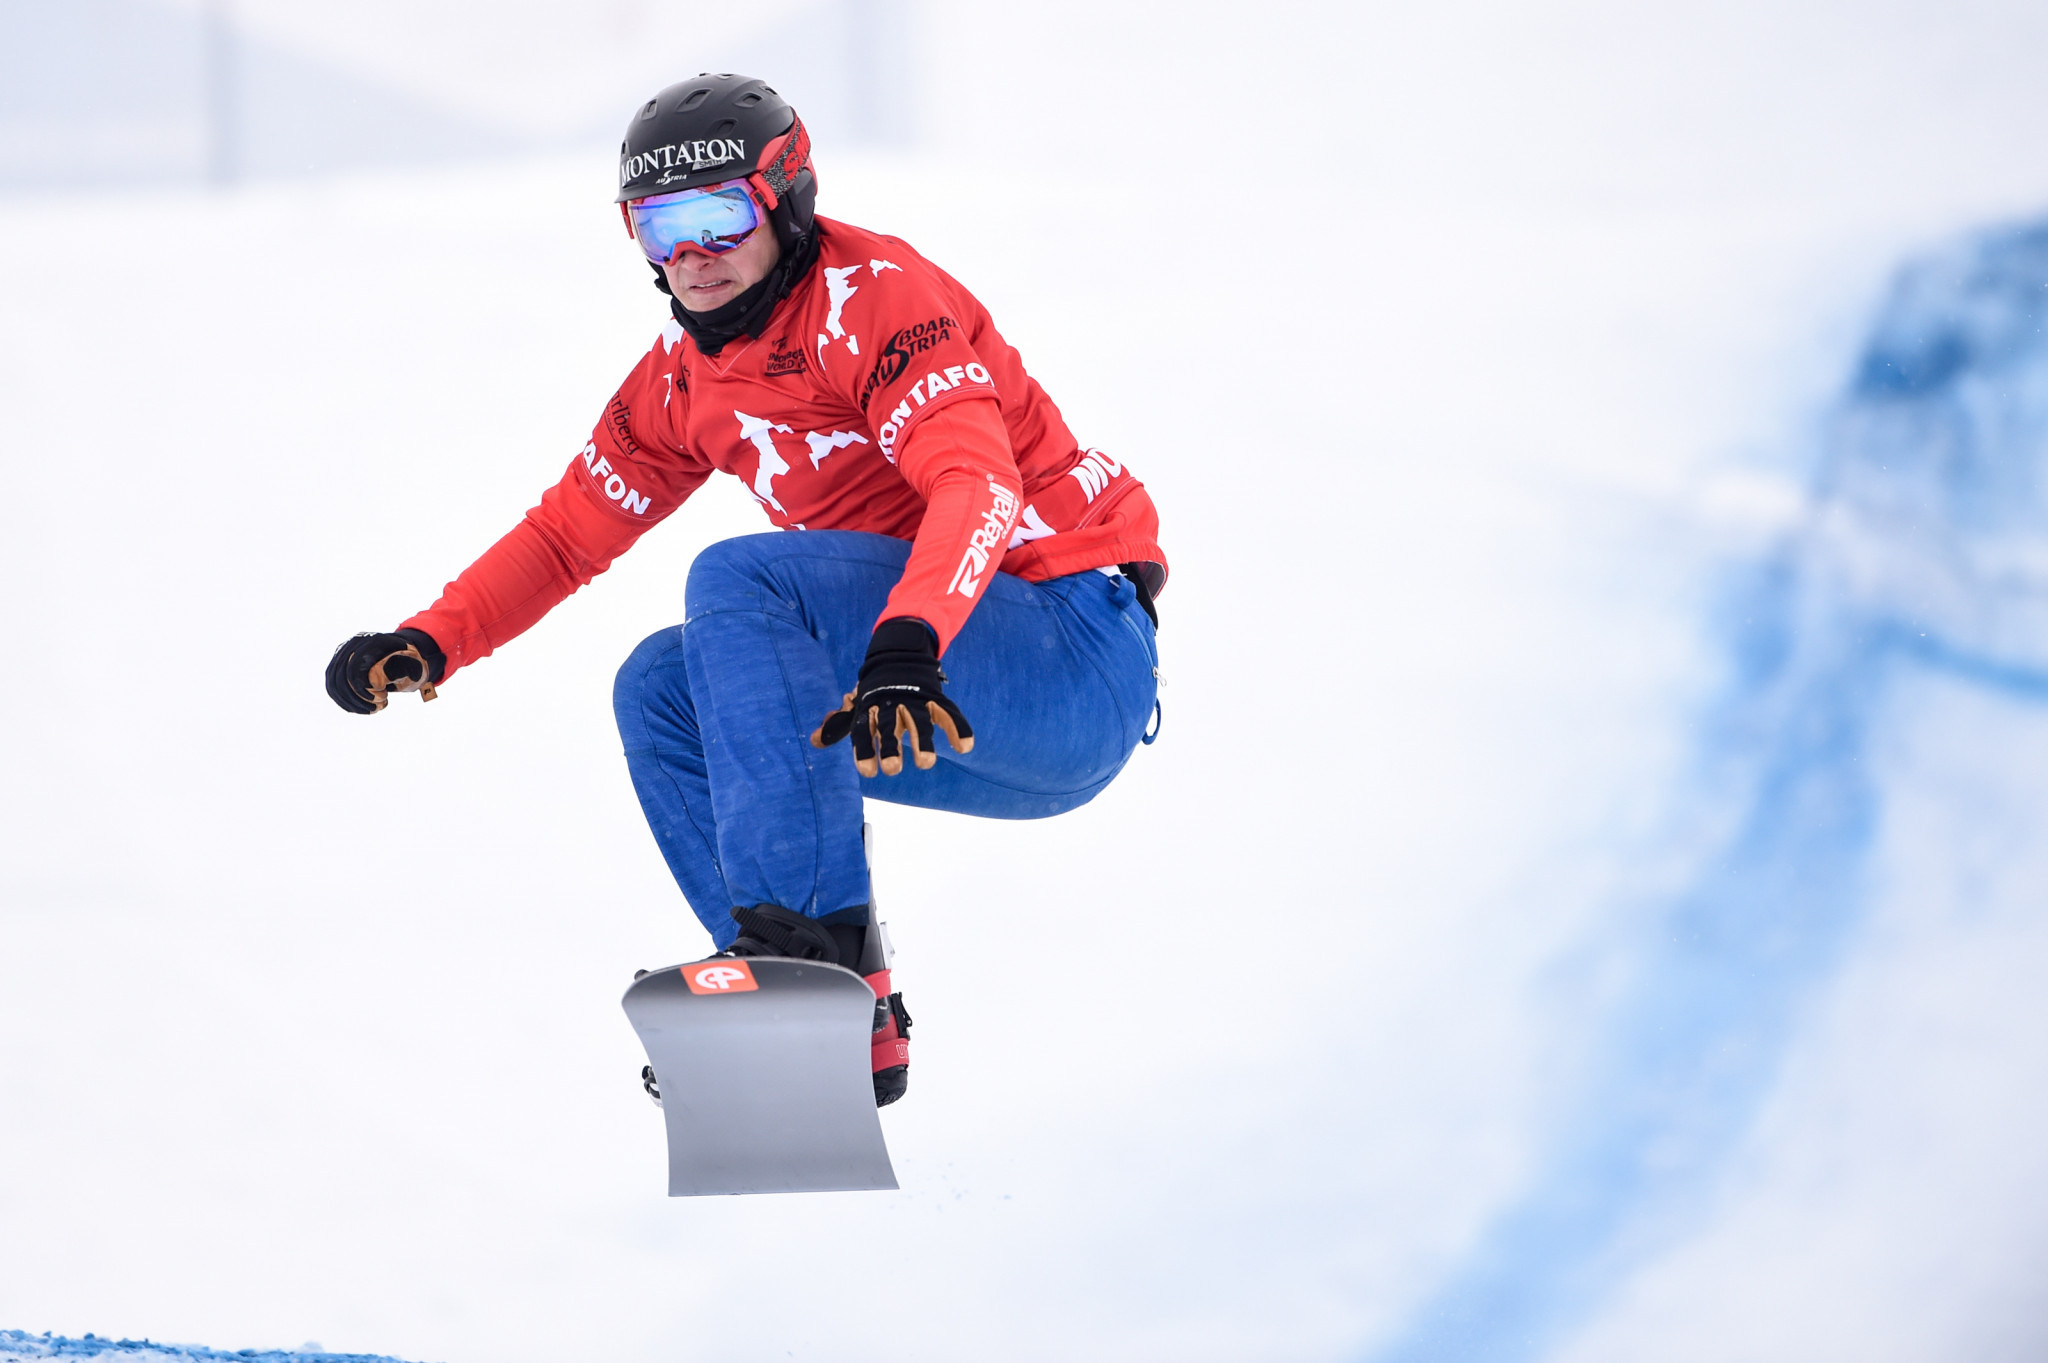 Hämmerle confident for Beijing 2022 Winter Olympics after dominant 2021